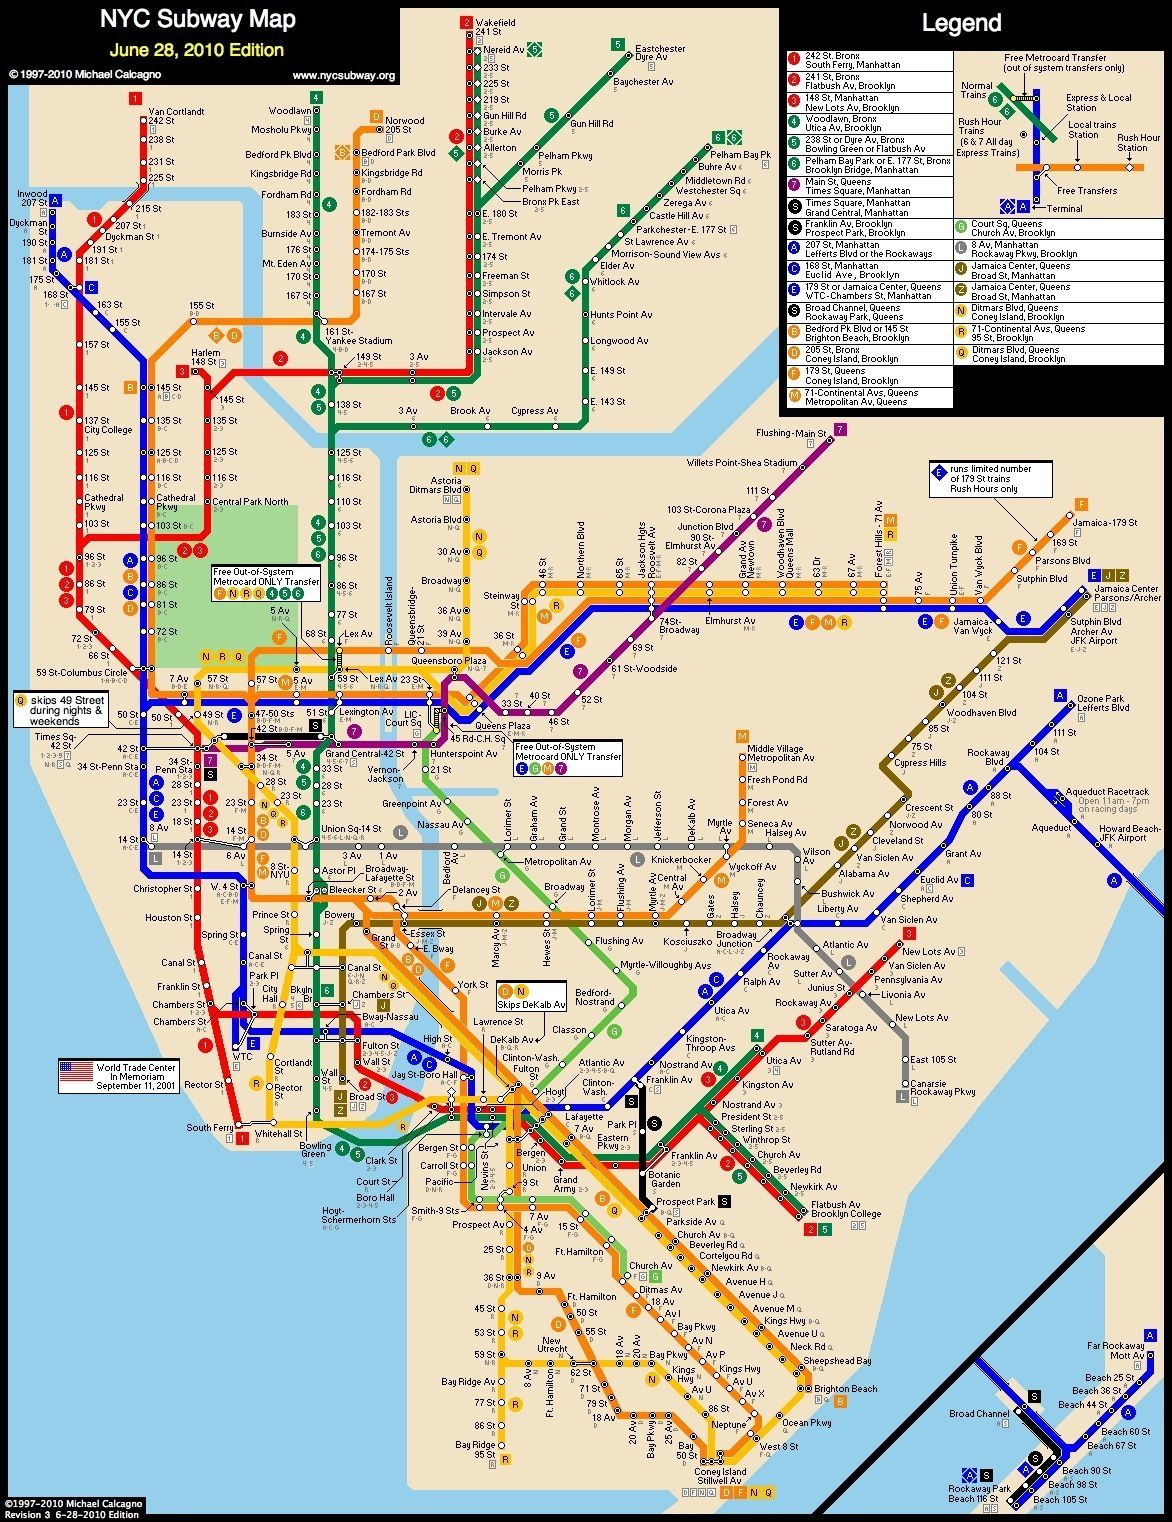 NYC Subway map From Liberty Harbor RV to Columbia stadium: Grove St ...